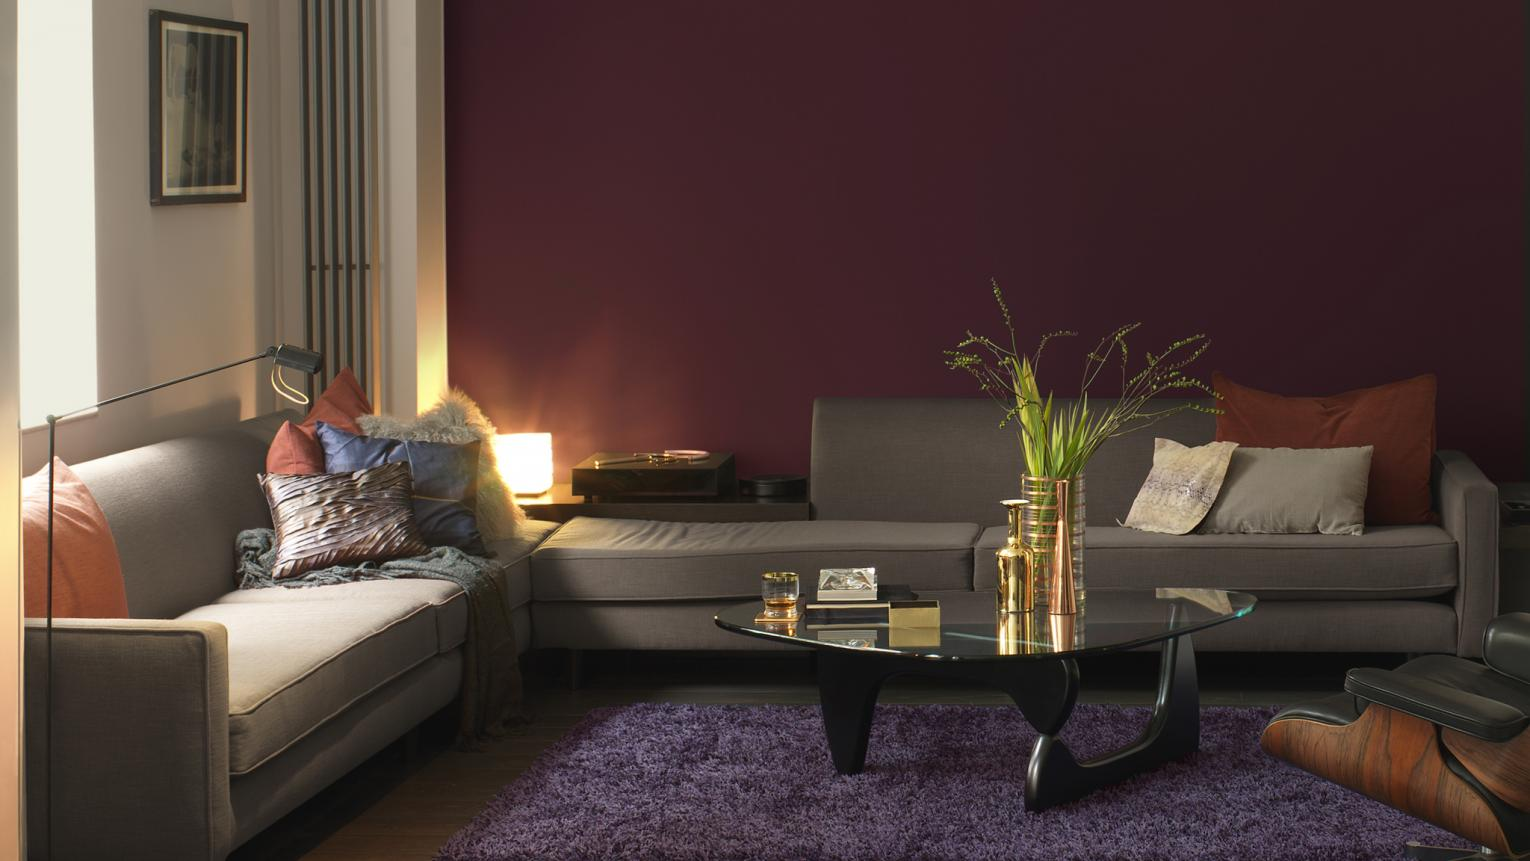 Choose deep, vibrant colours to create a living space that warms the heart.